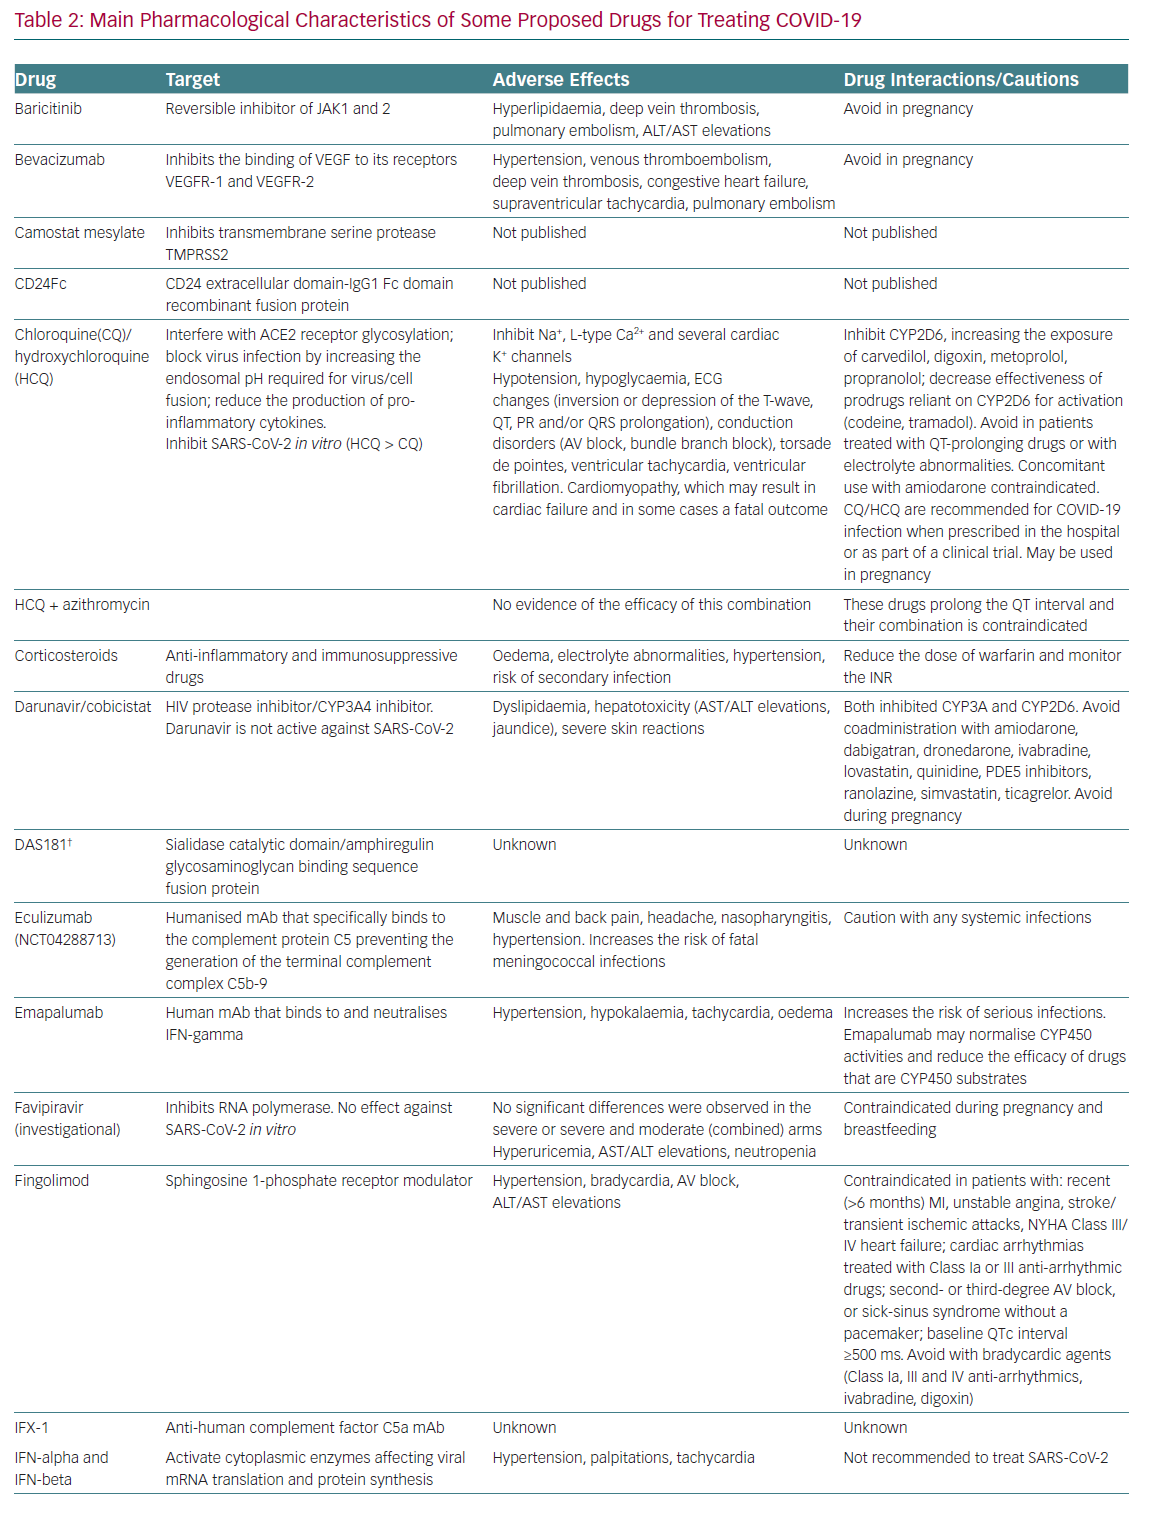 Main Pharmacological Characteristics of Some Proposed Drugs for Treating COVID-19